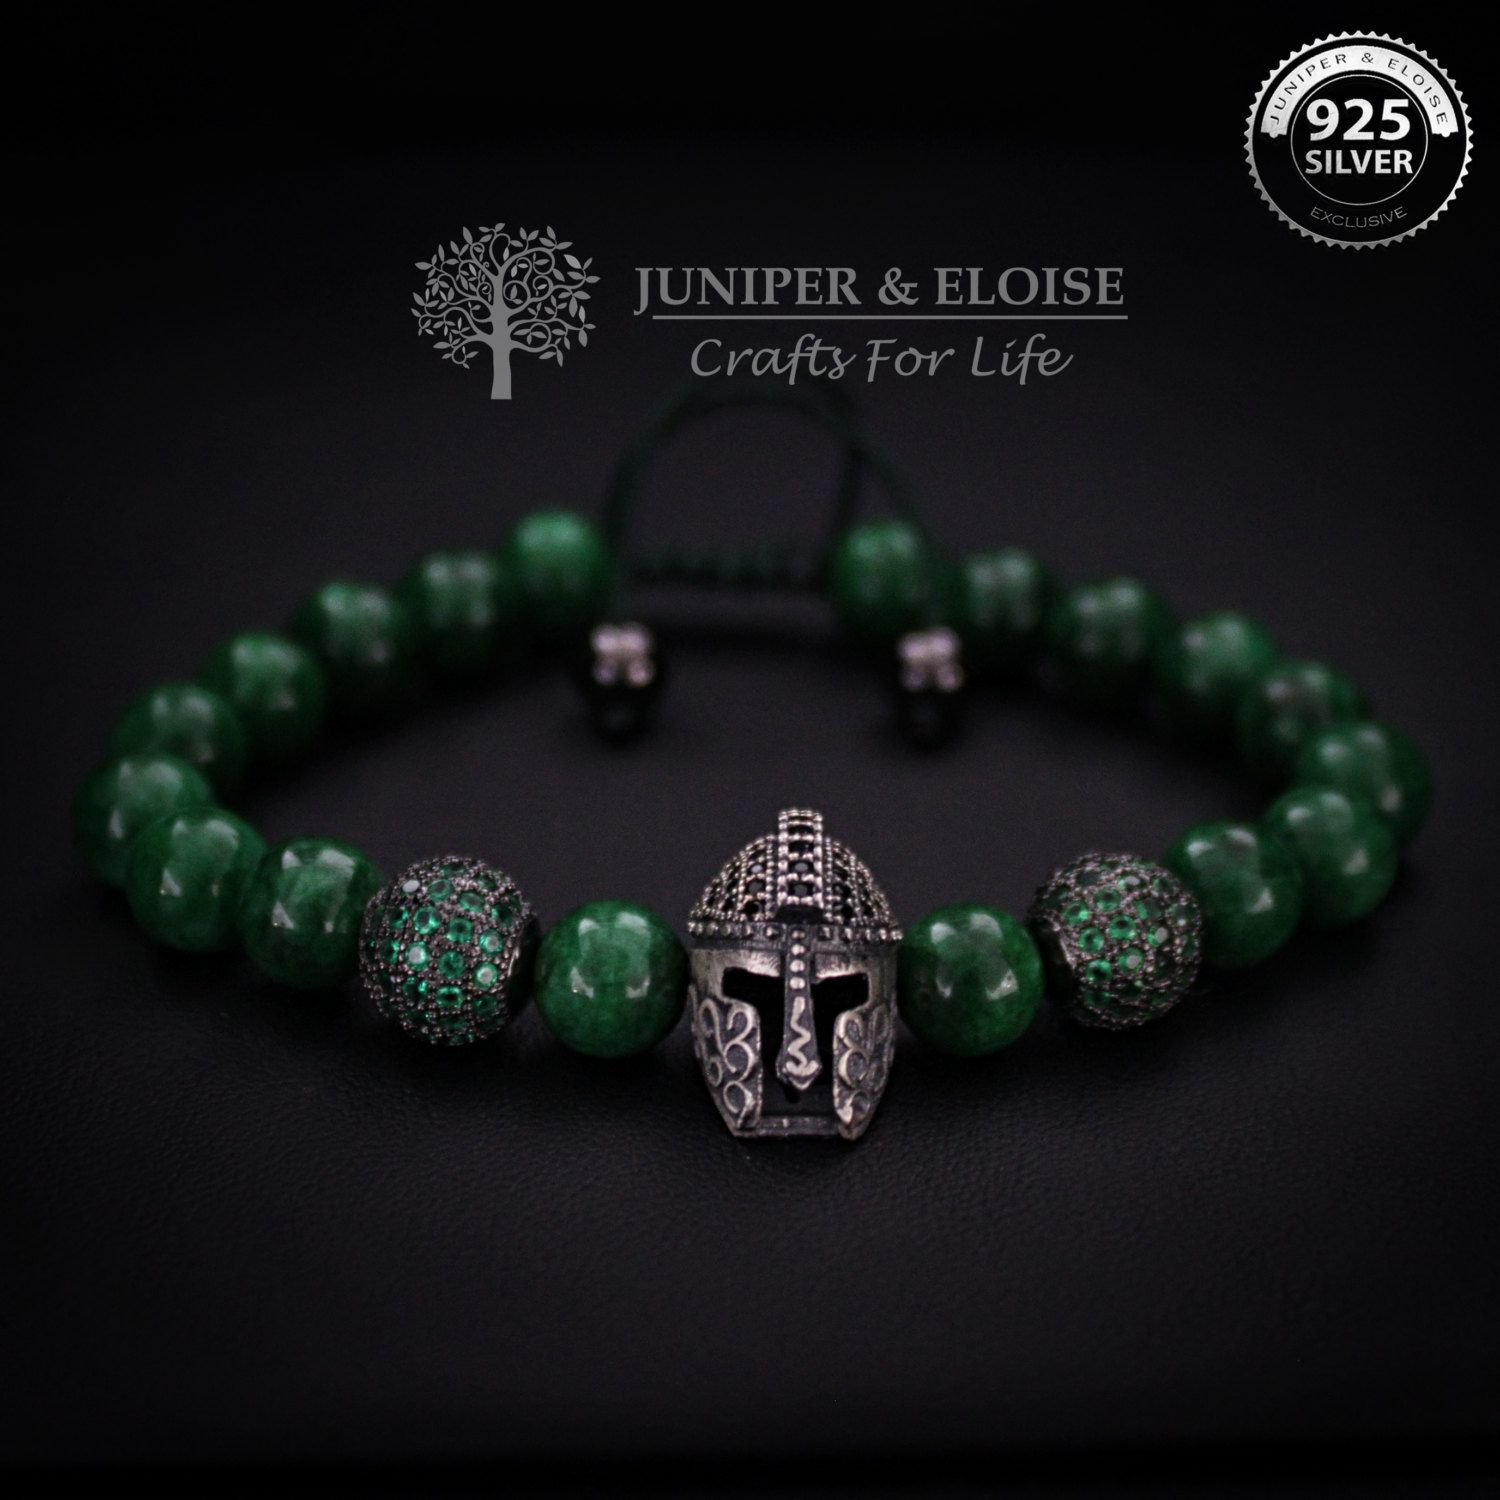 Helmet bracelet mens bracelet gift for women gift ideas emerald